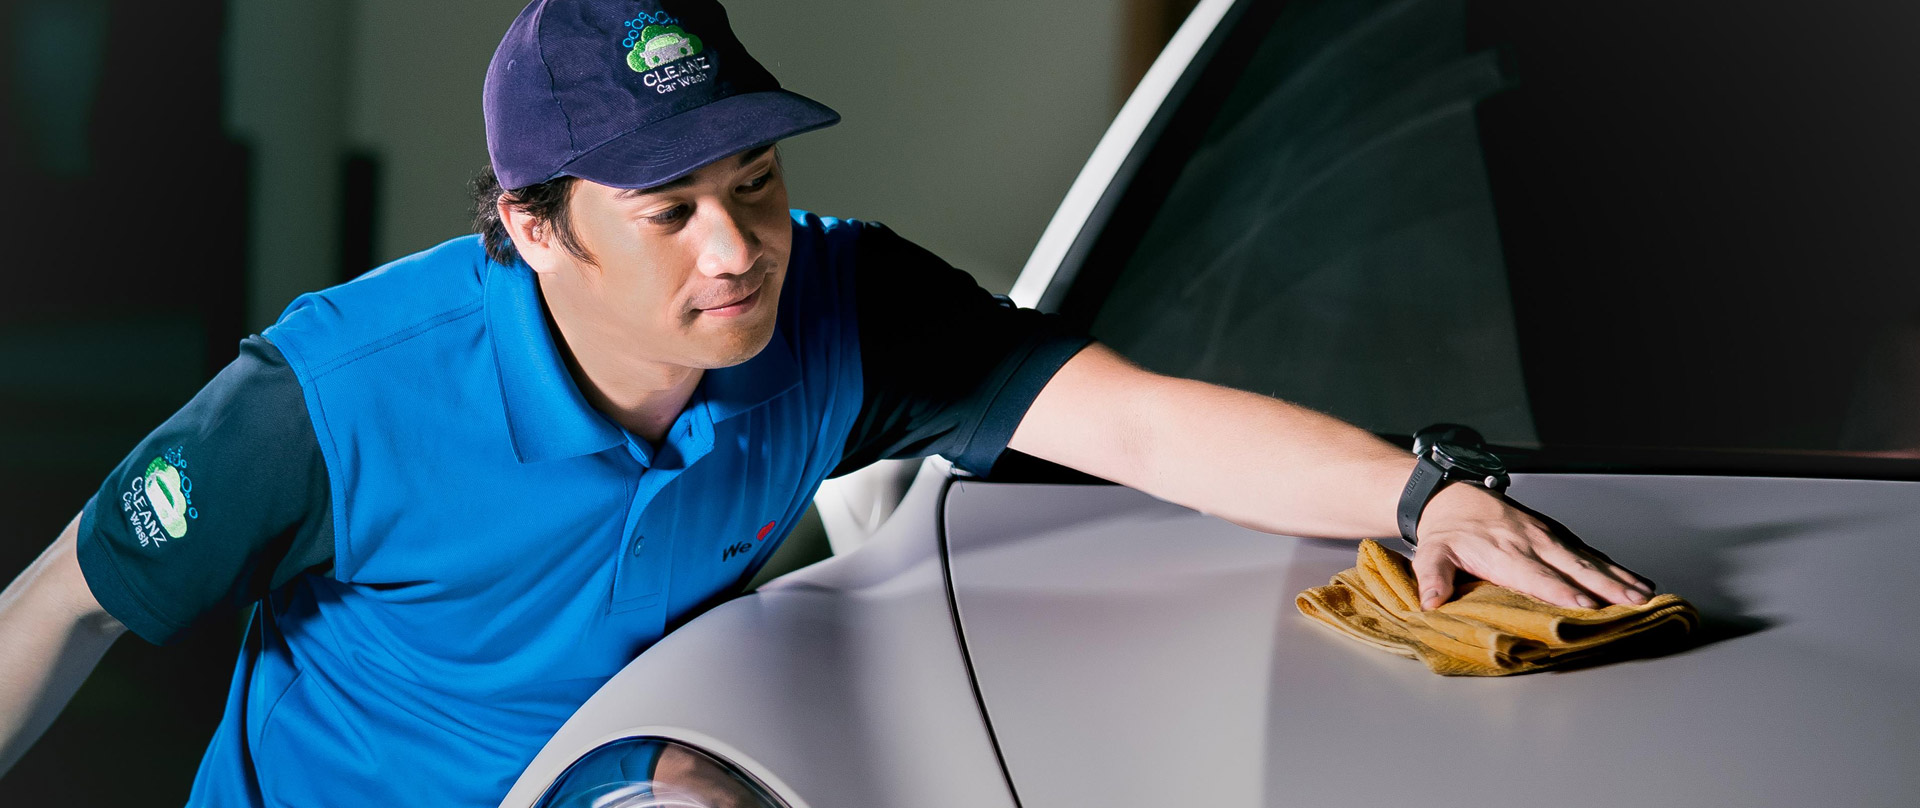 waterless car wash companies in Dubai